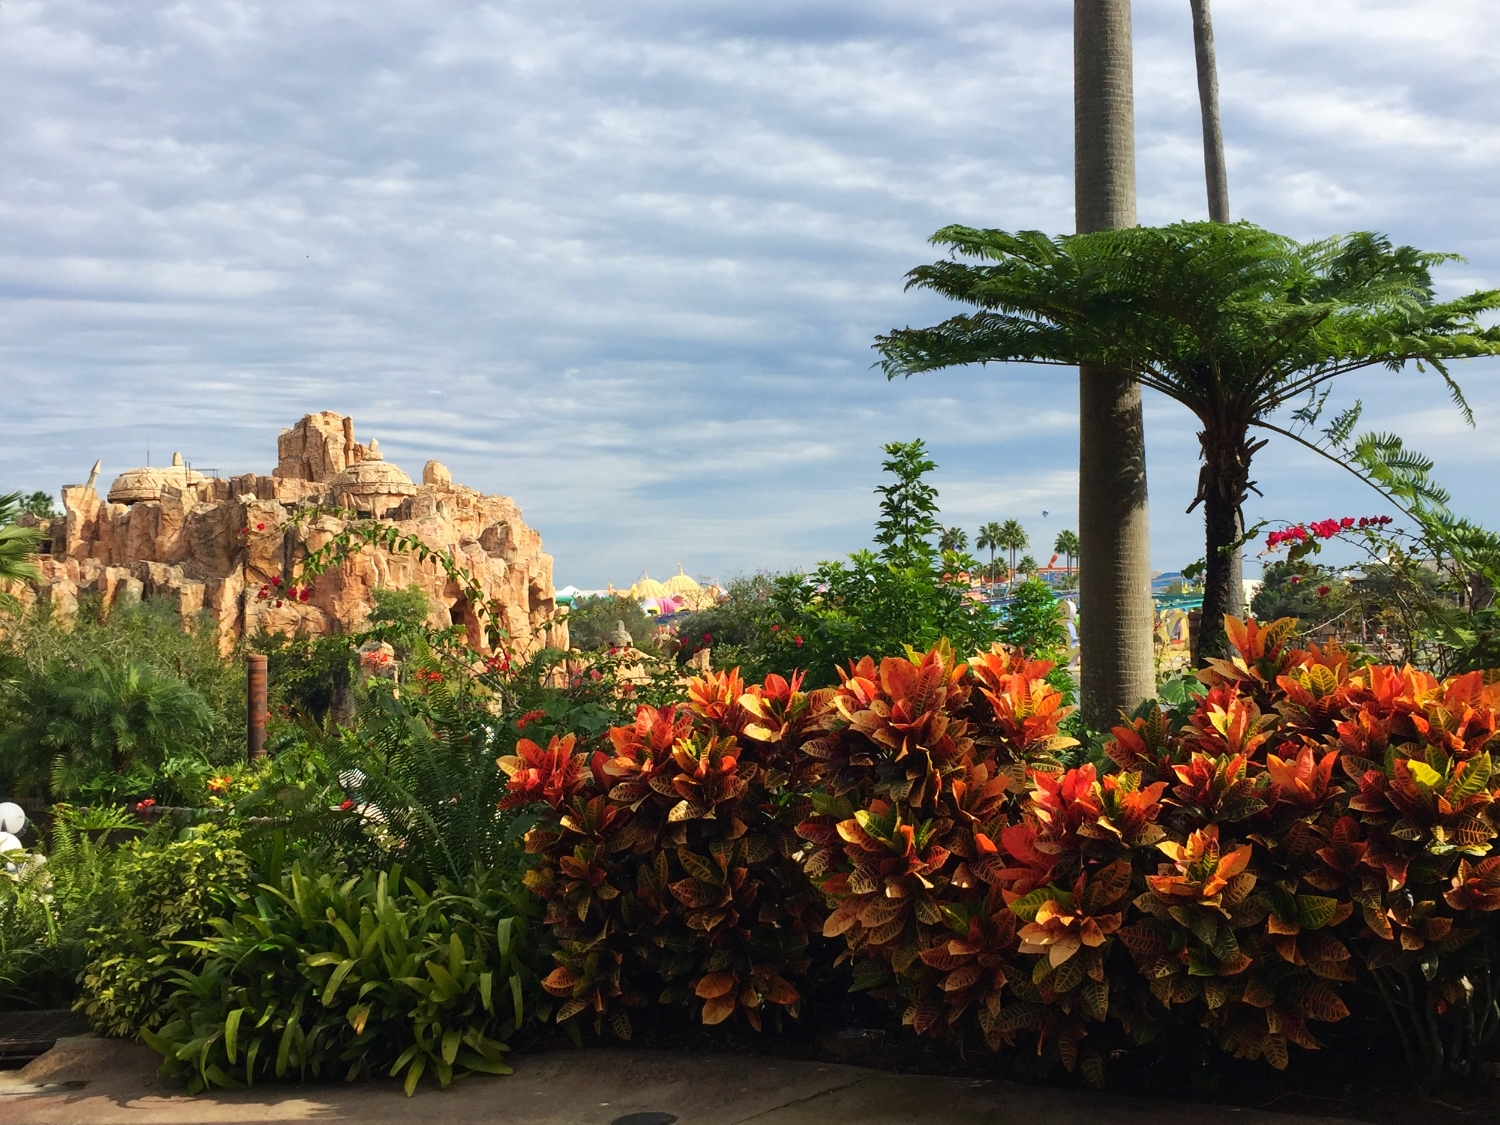 The area behind the Jurassic Park Discovery Center is a great place to escape the crowds and see a nice view.